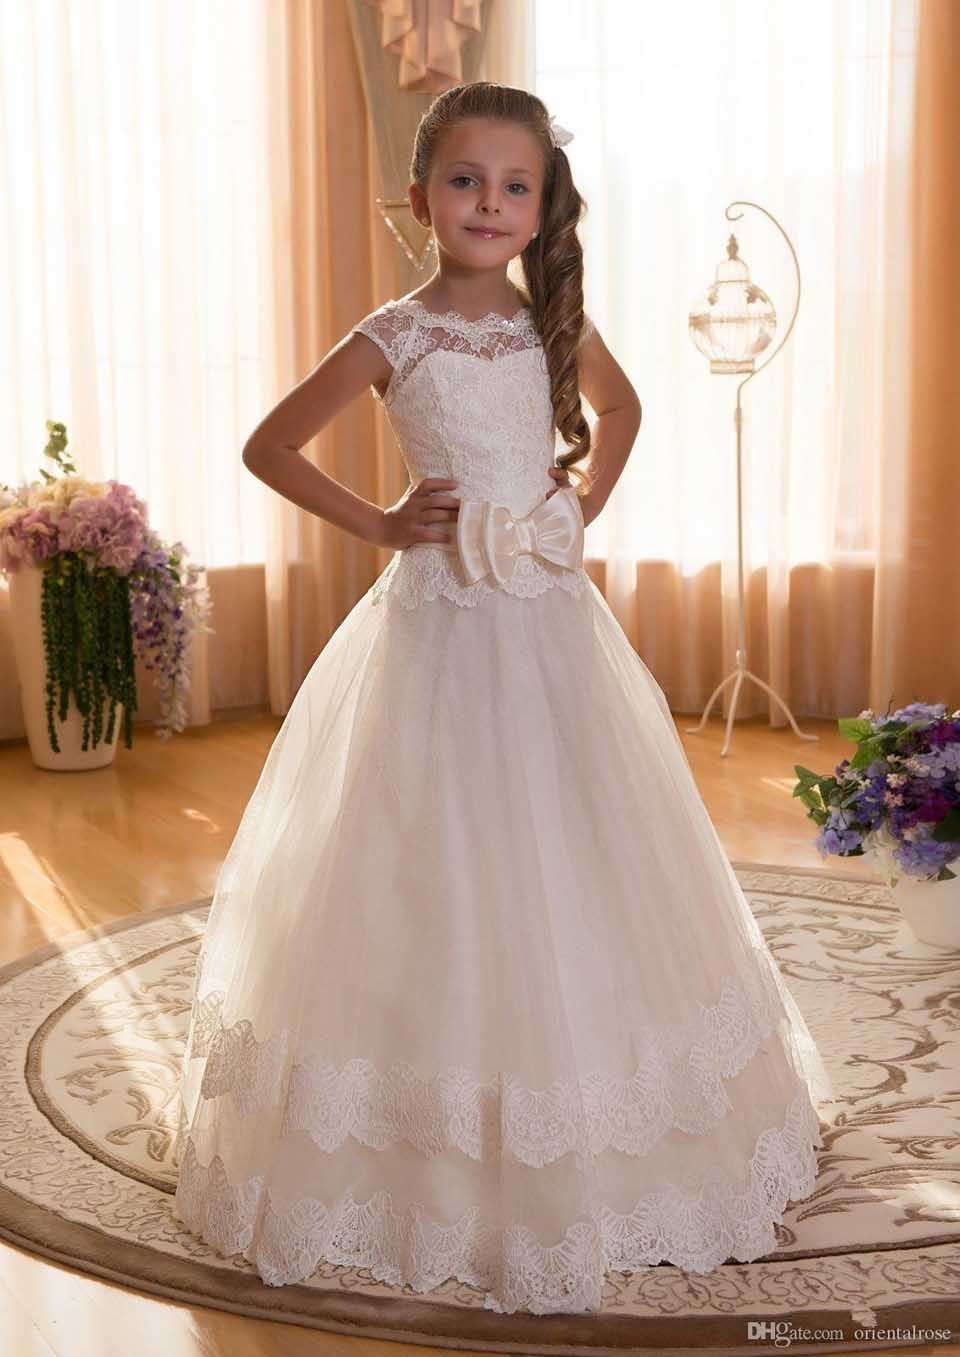 Cute 2019   Flower     Girl     Dresses   For Weddings Ball Gown Cap Sleeves Tulle Appliques Bow Long First Communion   Dresses   Little   Girl